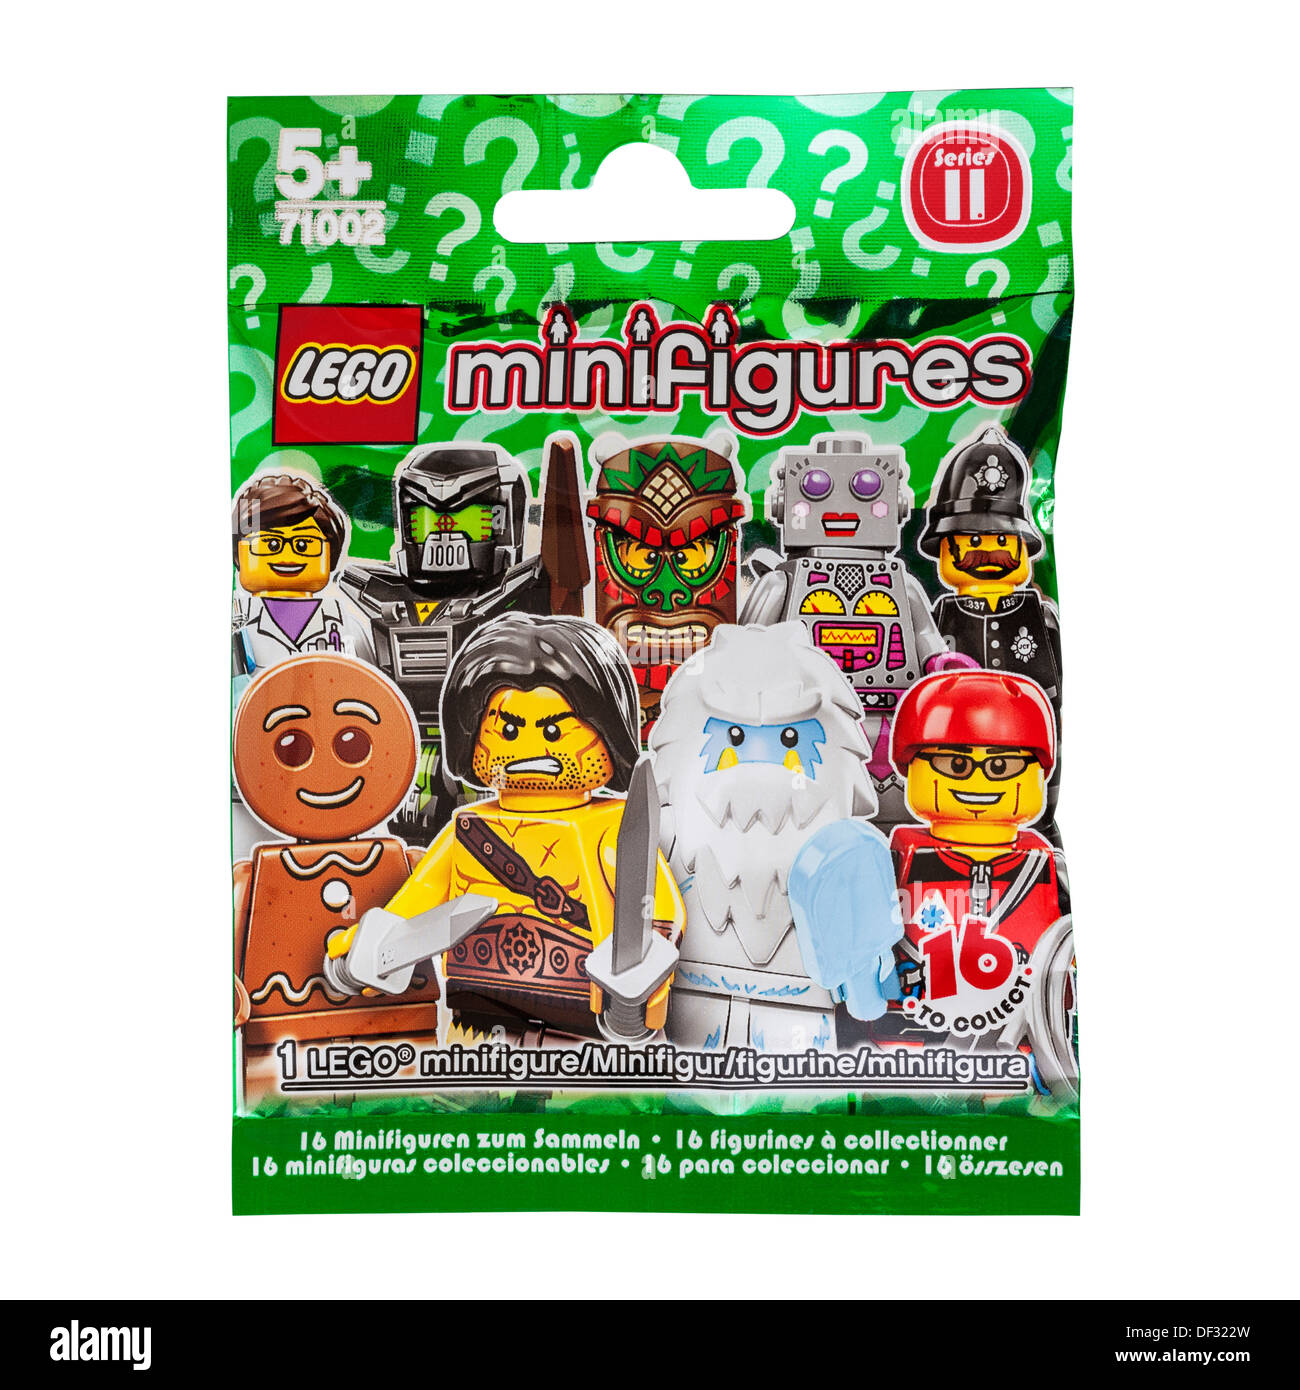 A Lego minifigure in packaging on a white background - Stock Image